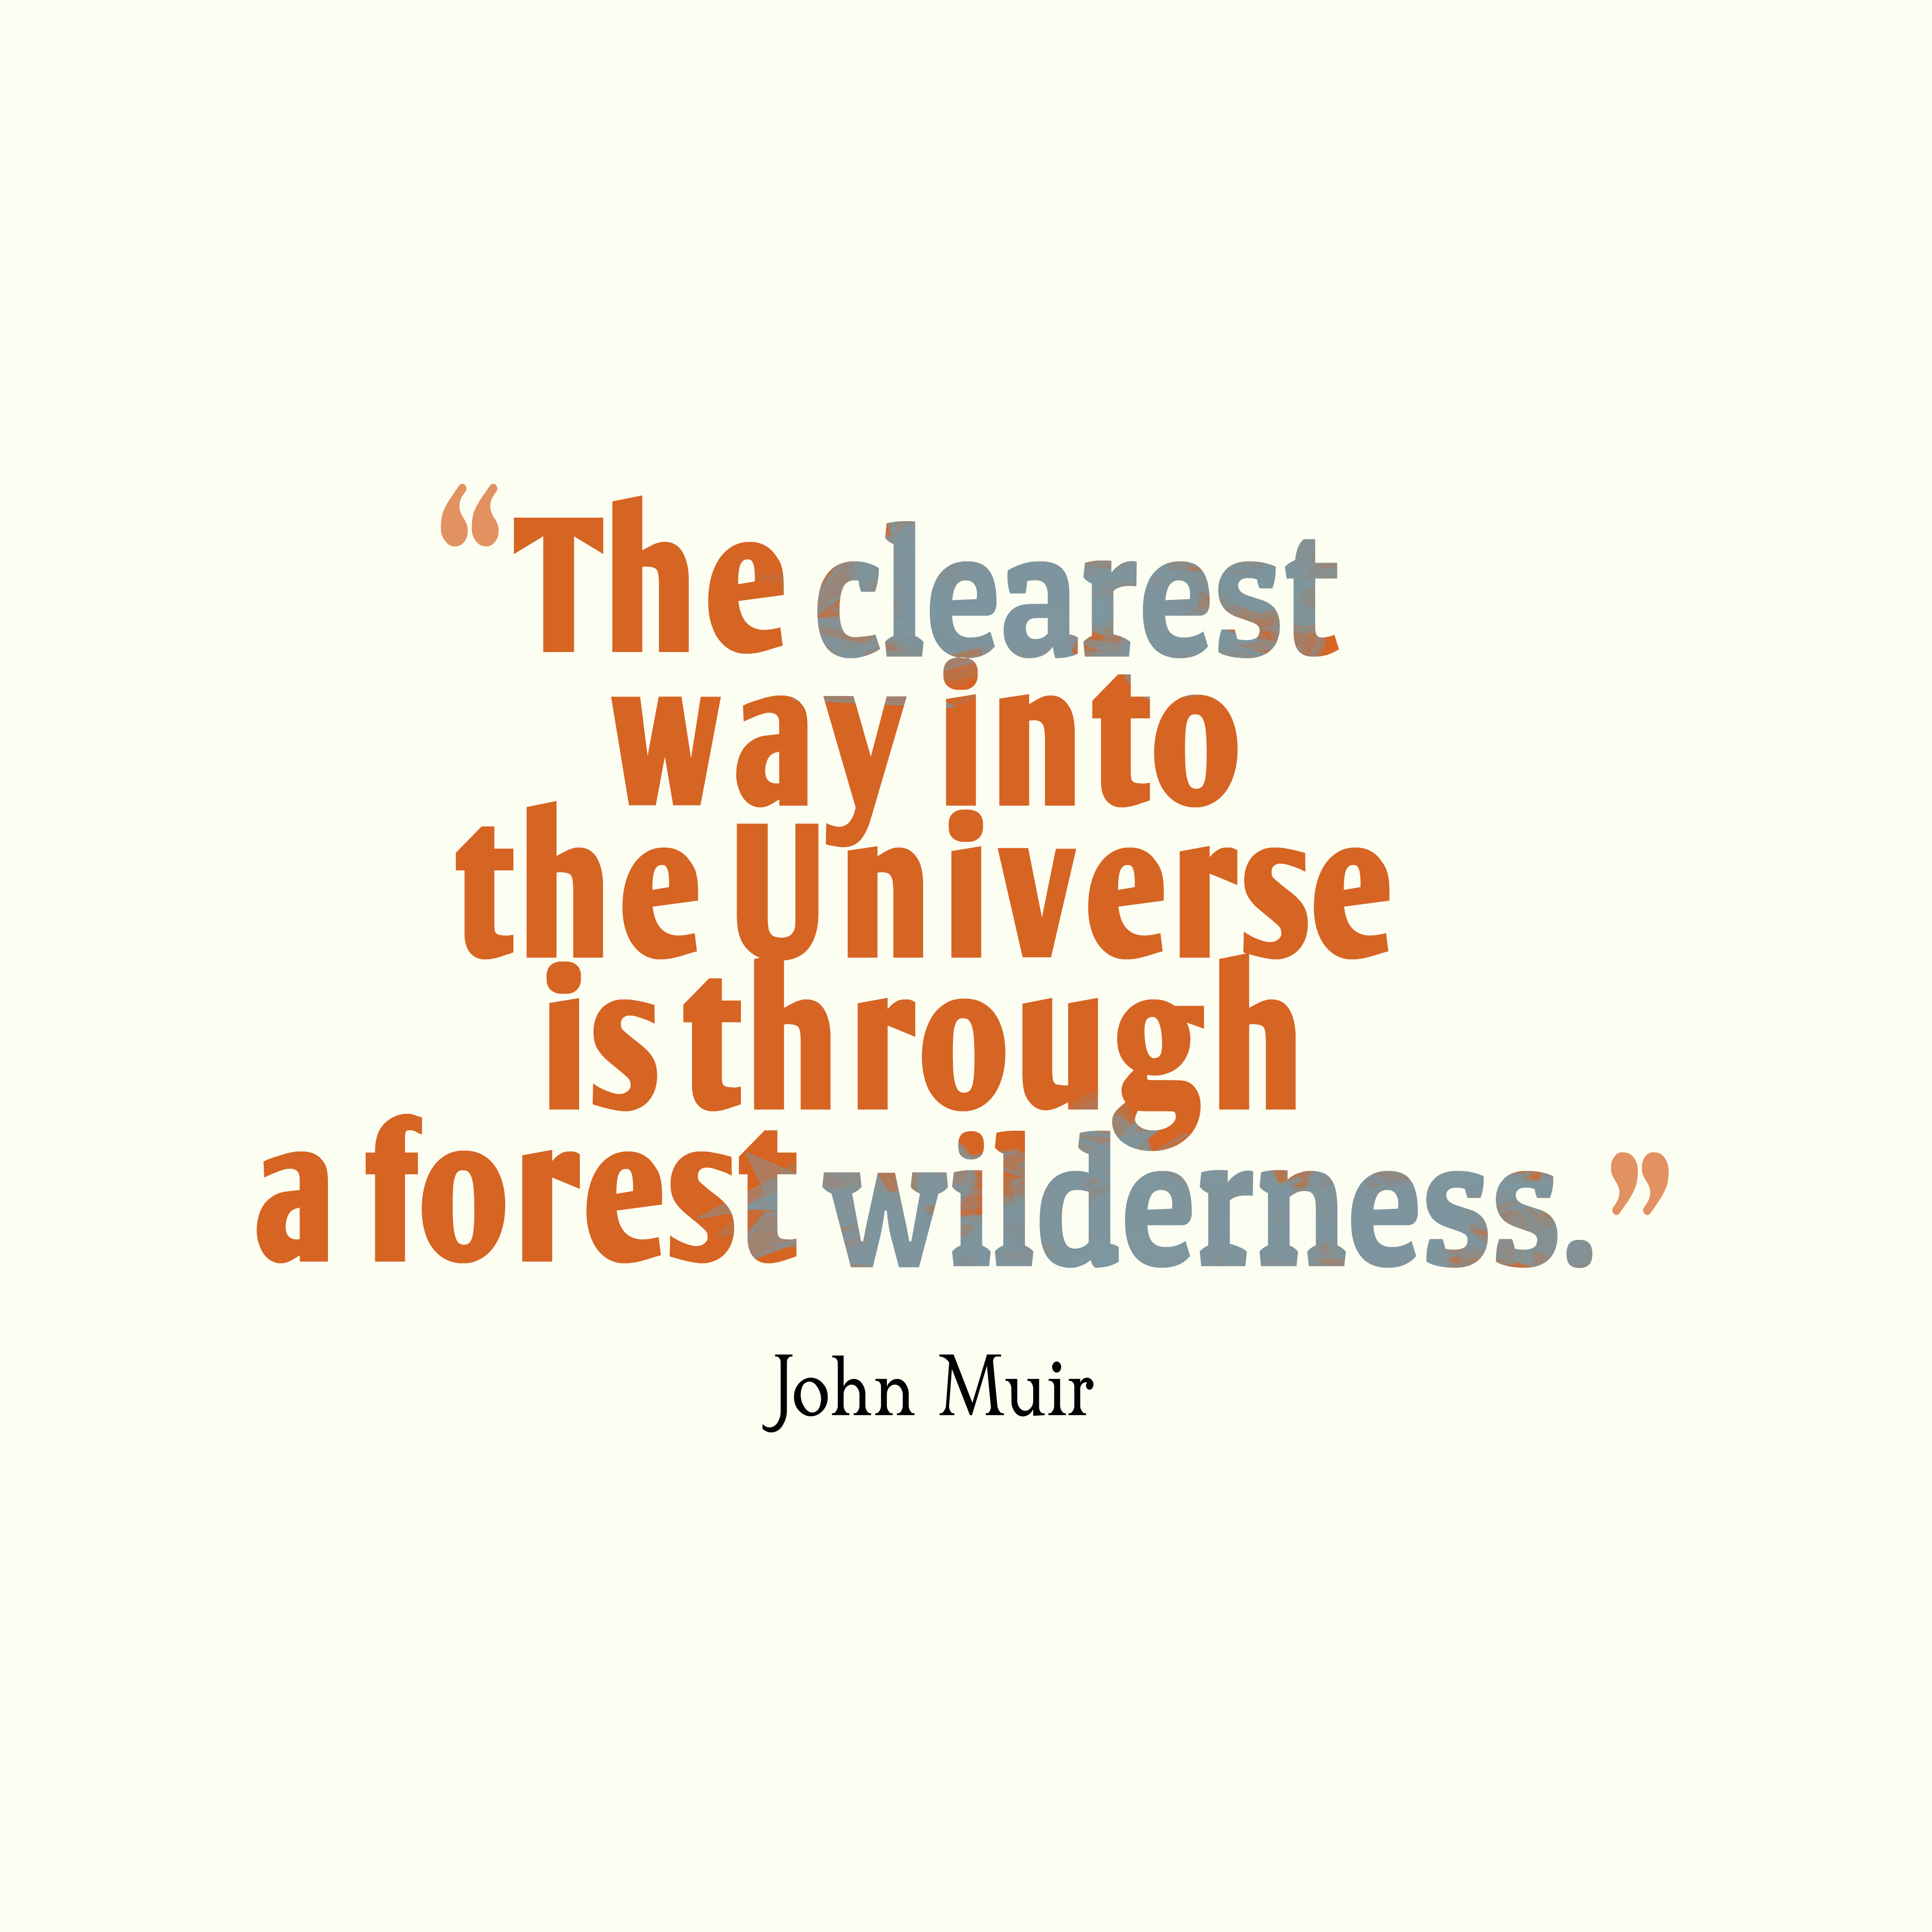 John Muir Quote About Nature